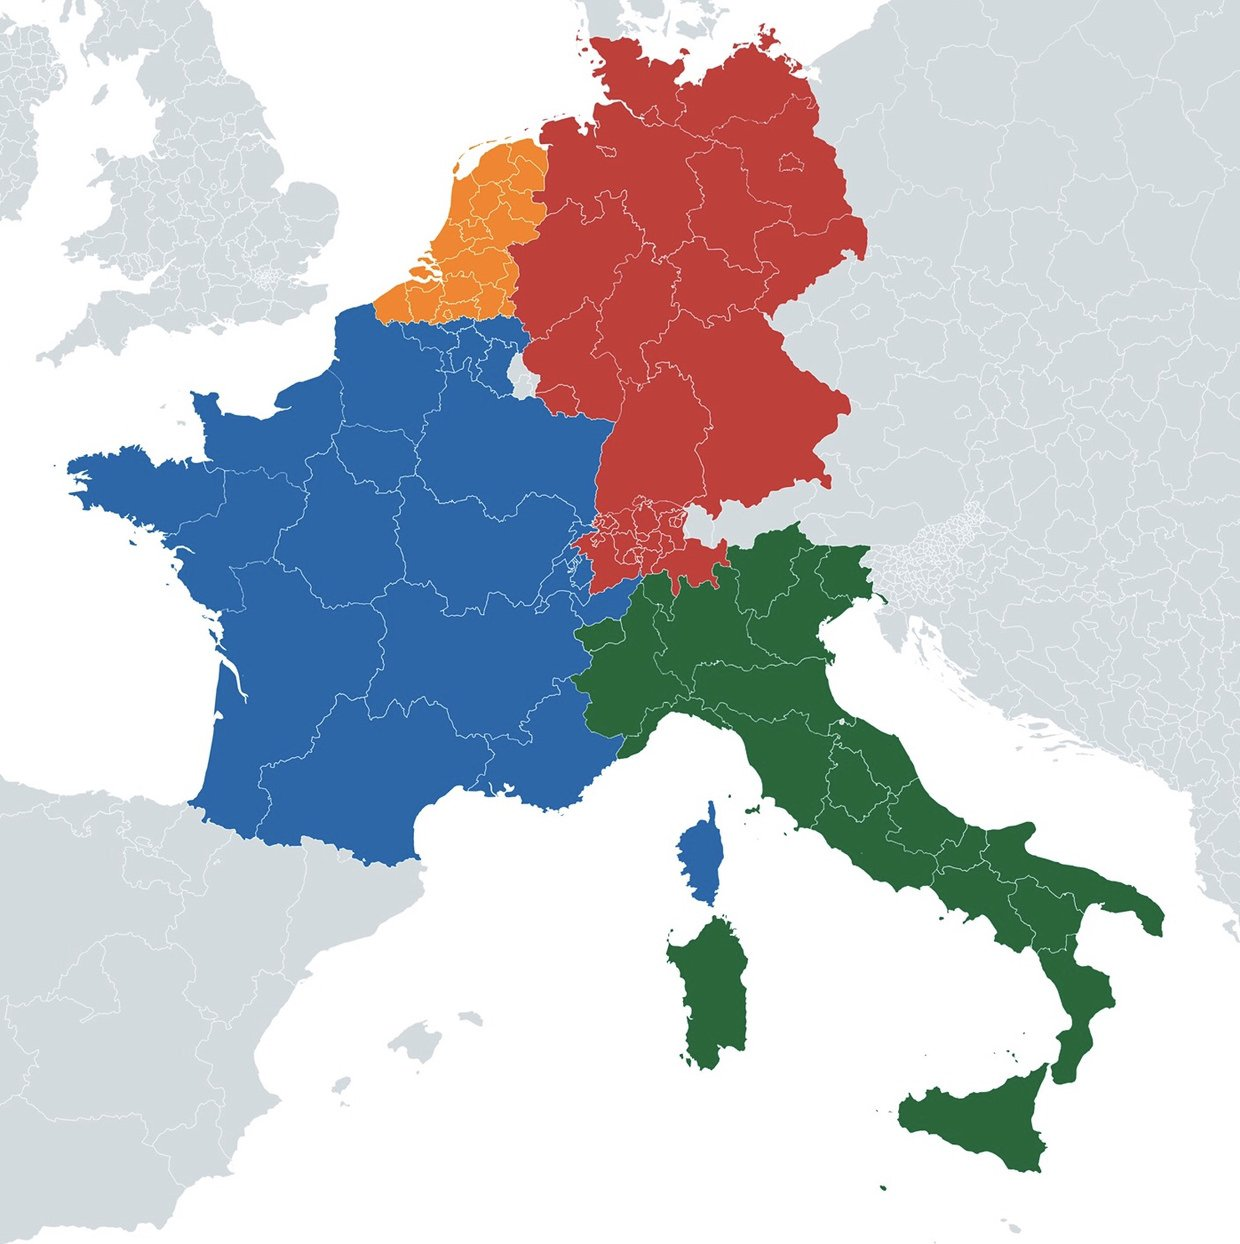 Map if regions of Belgium and Switzerland merged with neighboring countries based on the most spoken language